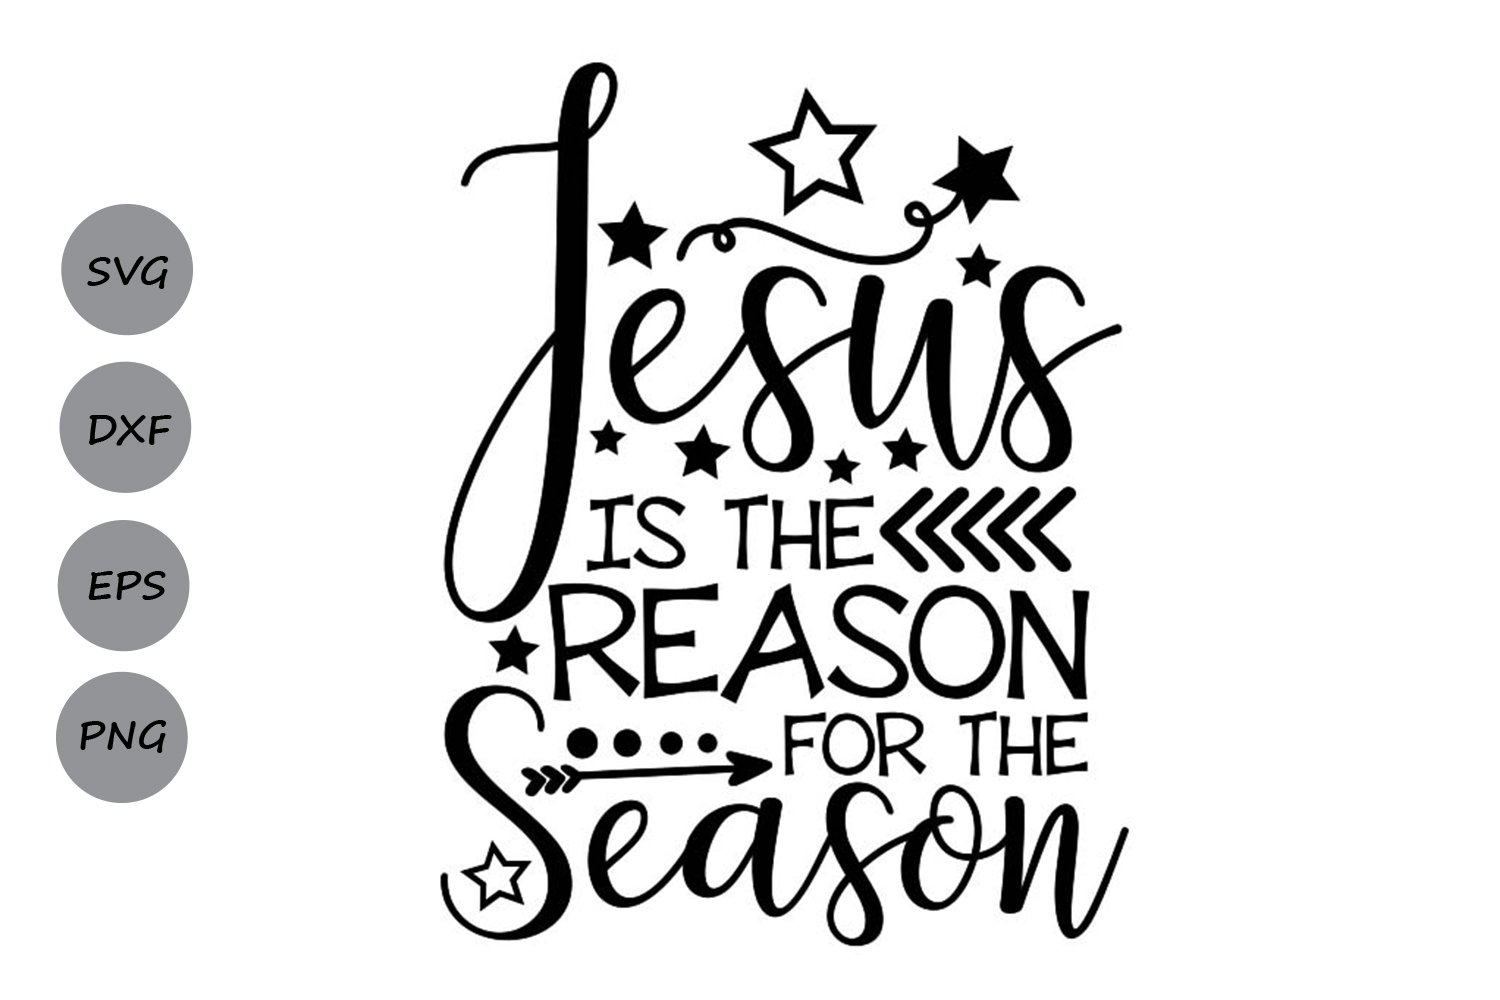 Download Free Jesus Is The Reason For The Season Graphic By Cosmosfineart for Cricut Explore, Silhouette and other cutting machines.